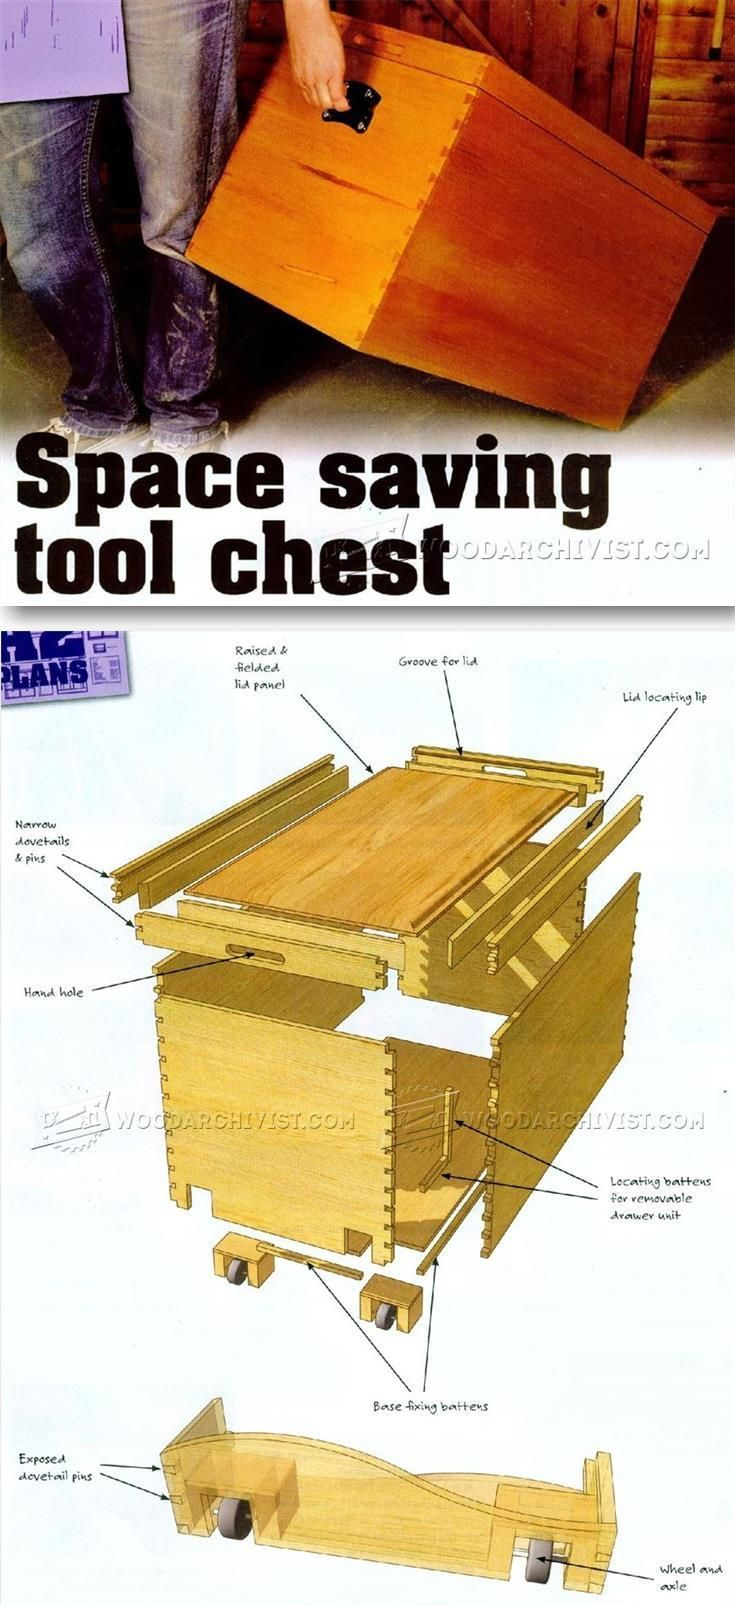 Working with pallets 5 essential woodworking power tools that won - Tool Chest Plans Workshop Solutions Projects Tips And Tricks Woodwork Woodworking Woodworking Plans Woodworking Projects